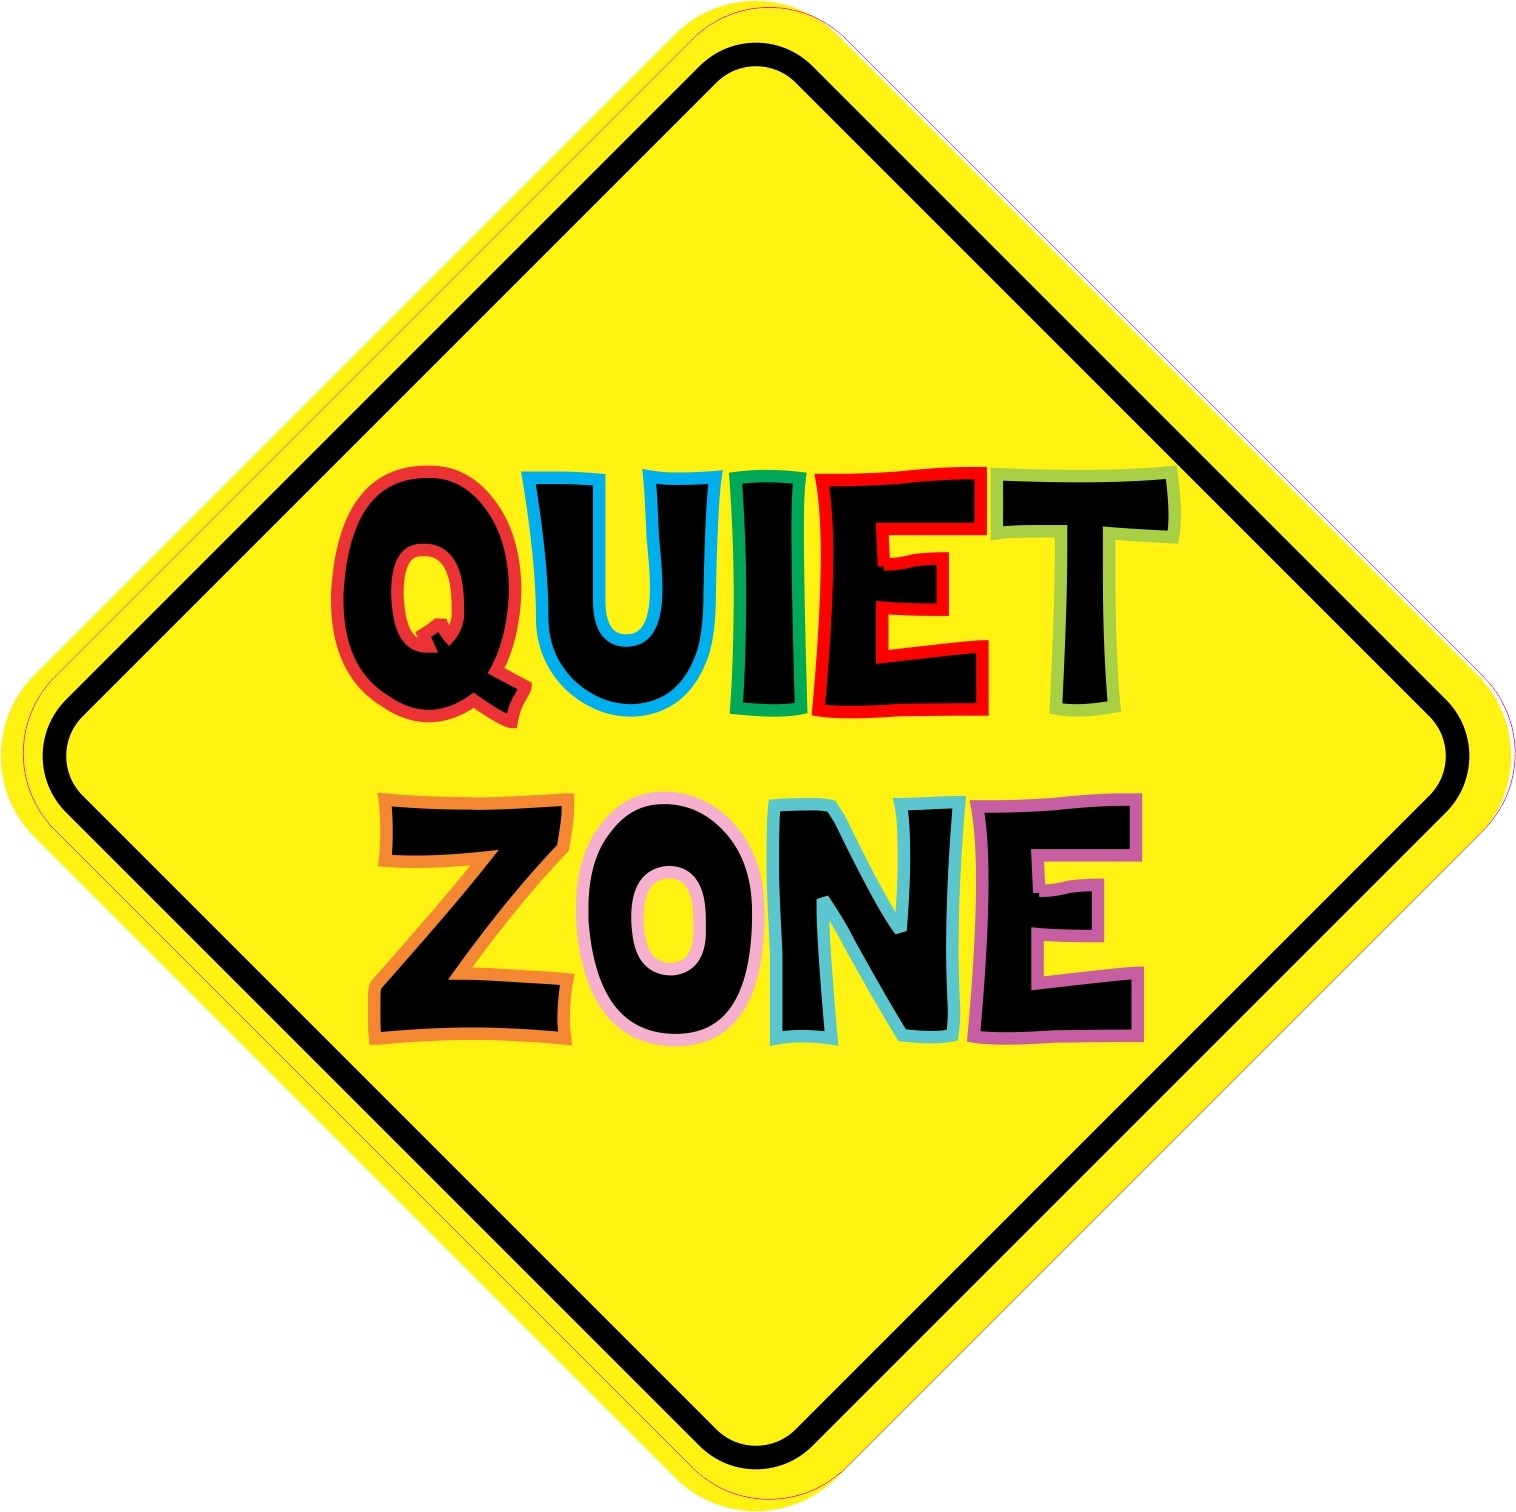 1776755 For Quiet Time Clipart.